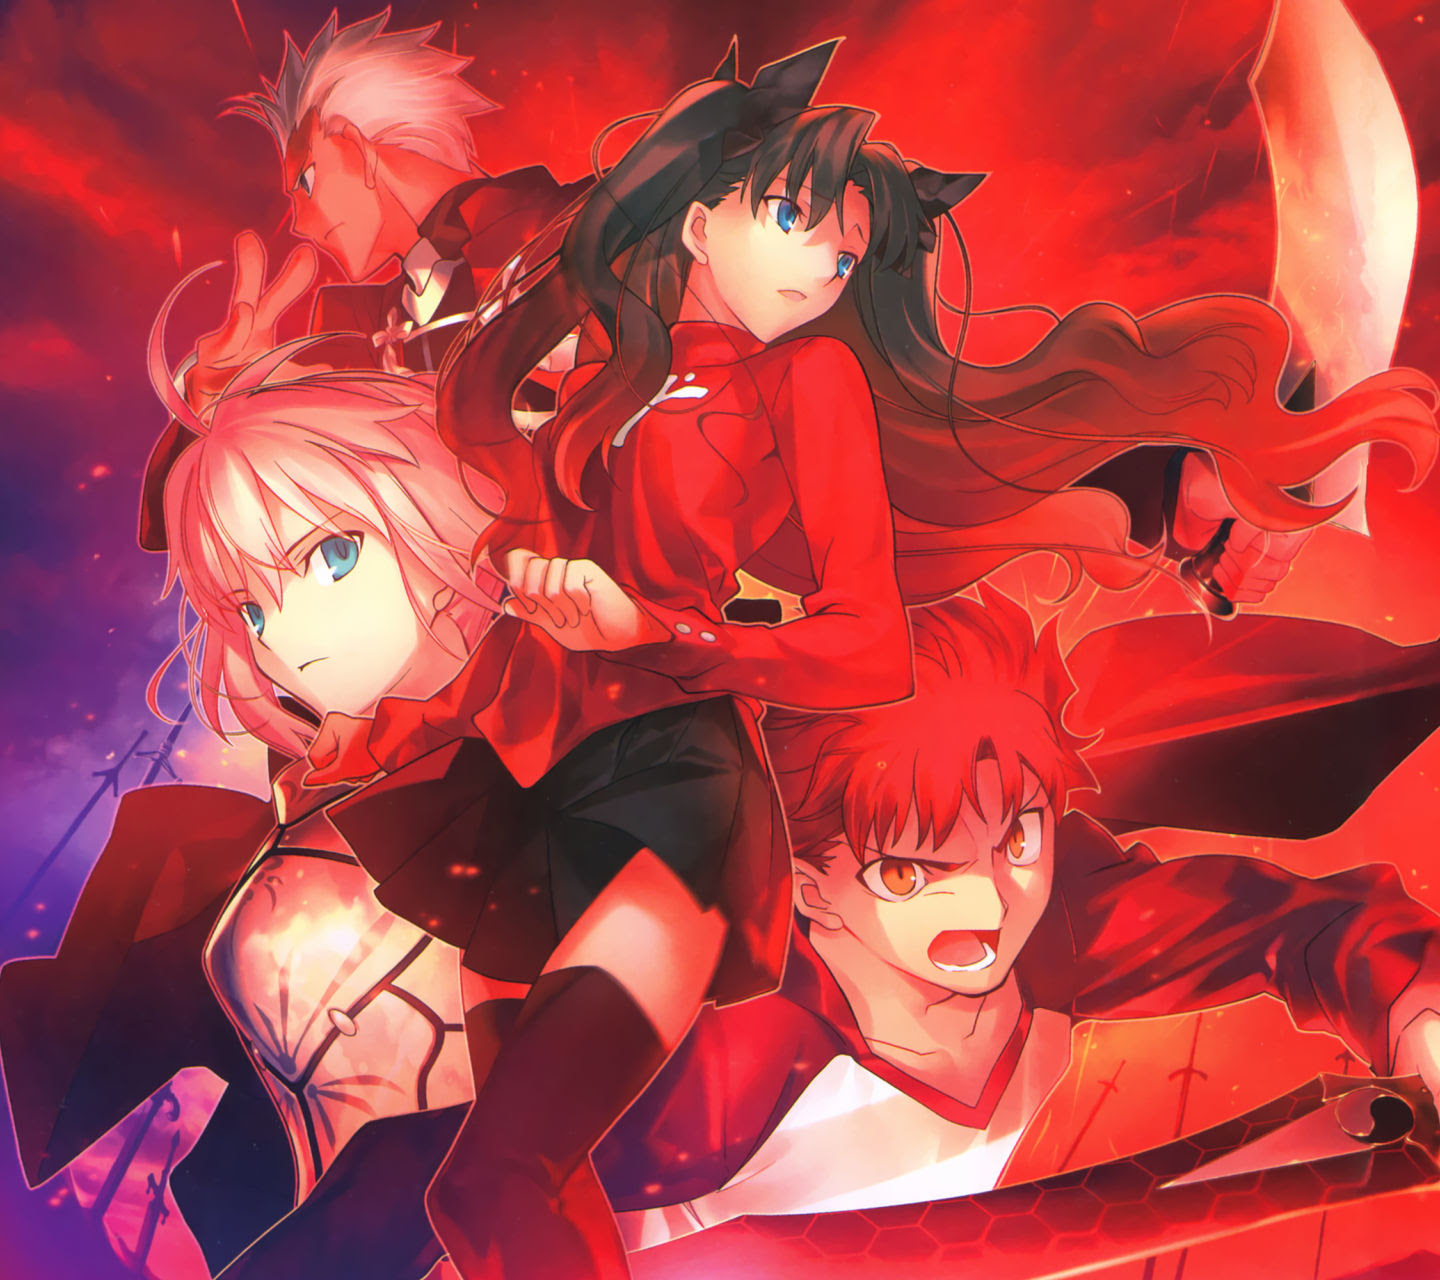 Fate Stay Night Android壁紙 画像 6 1440 1280 アニメ壁紙